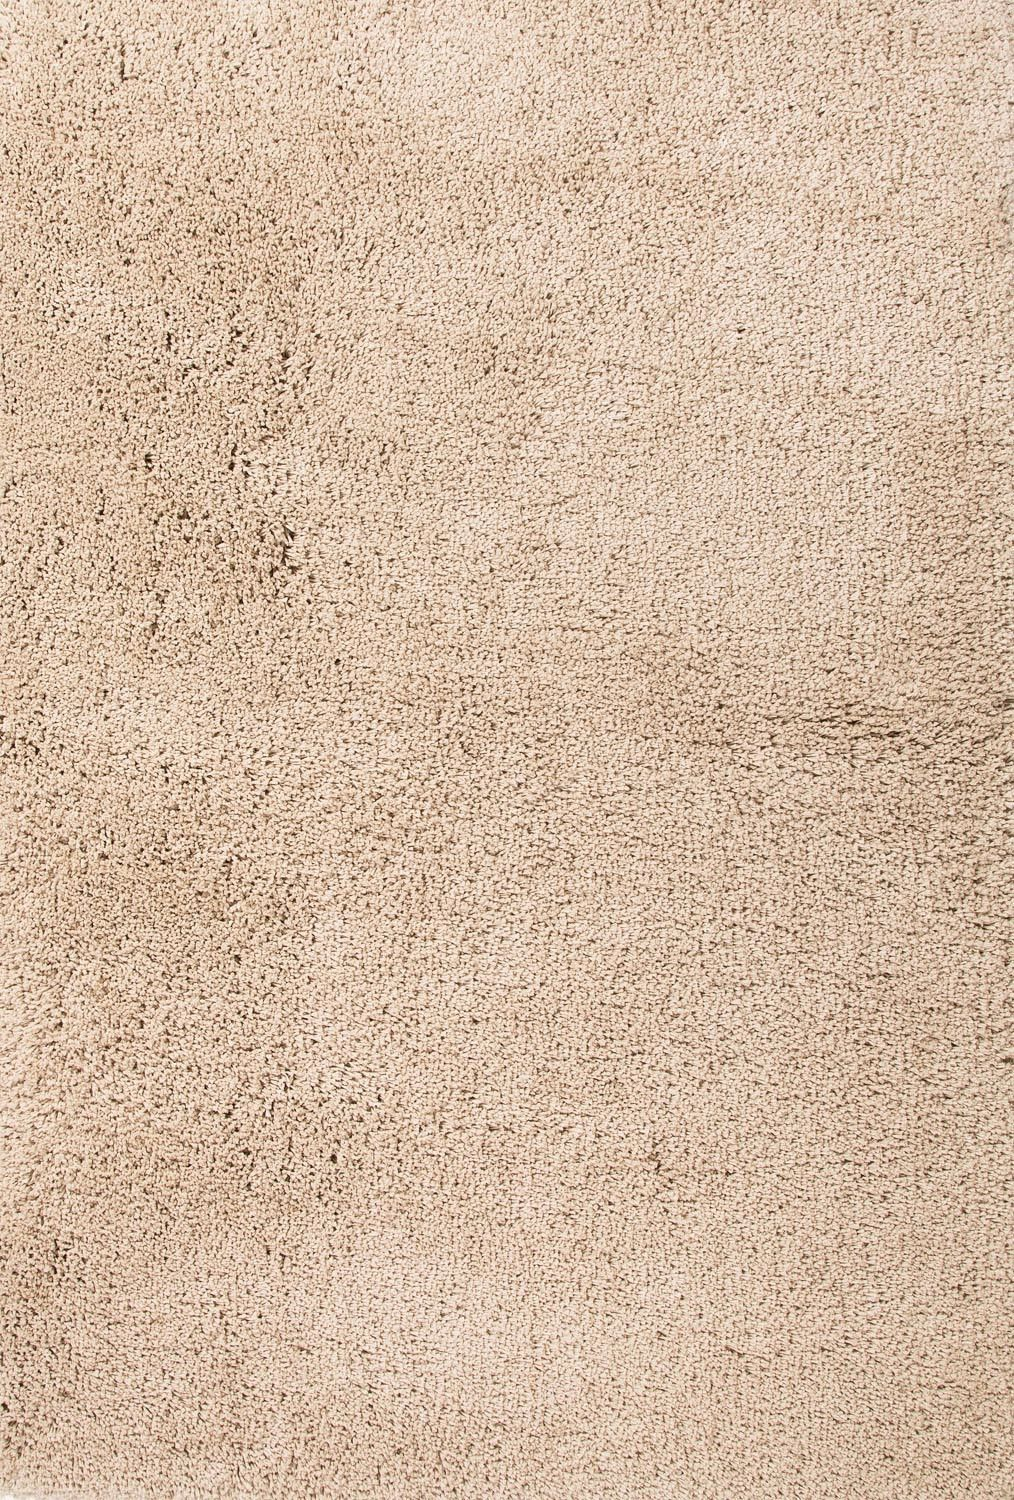 Layla Taupe & Tan Solid Area Rug